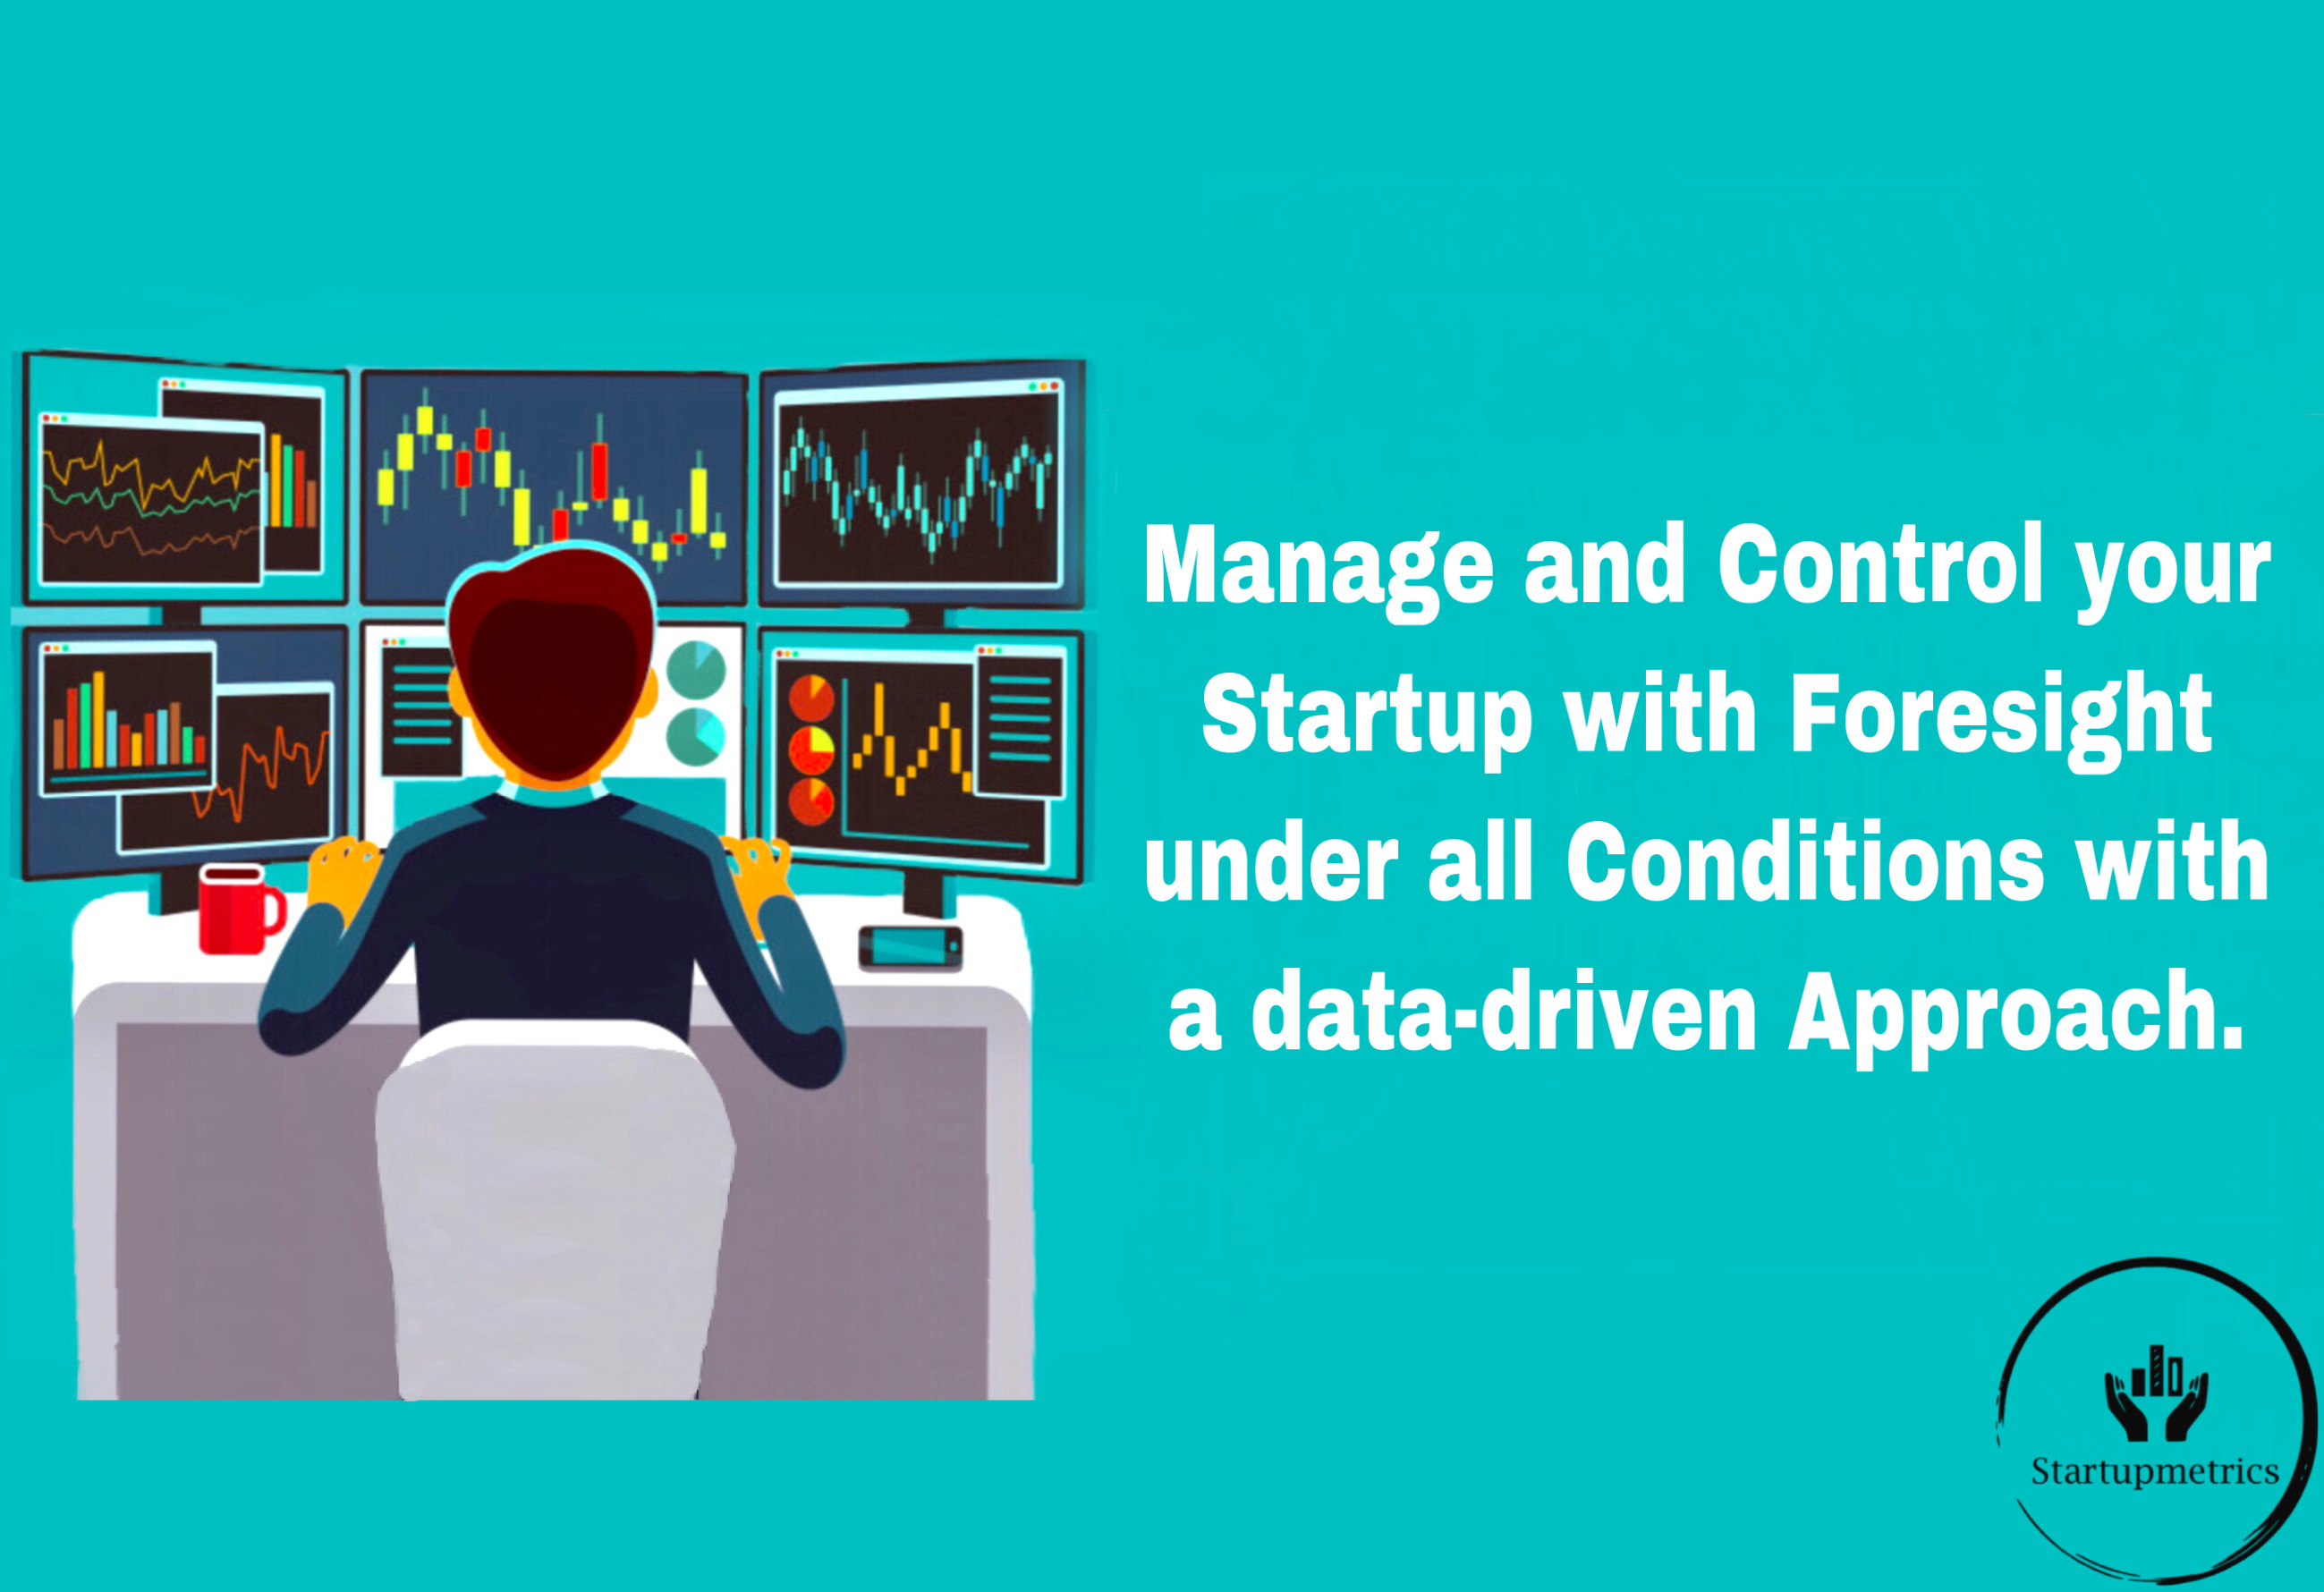 Challenges that Startups face when implementing Business Monitoring and Controlling Systems and how to overcome them